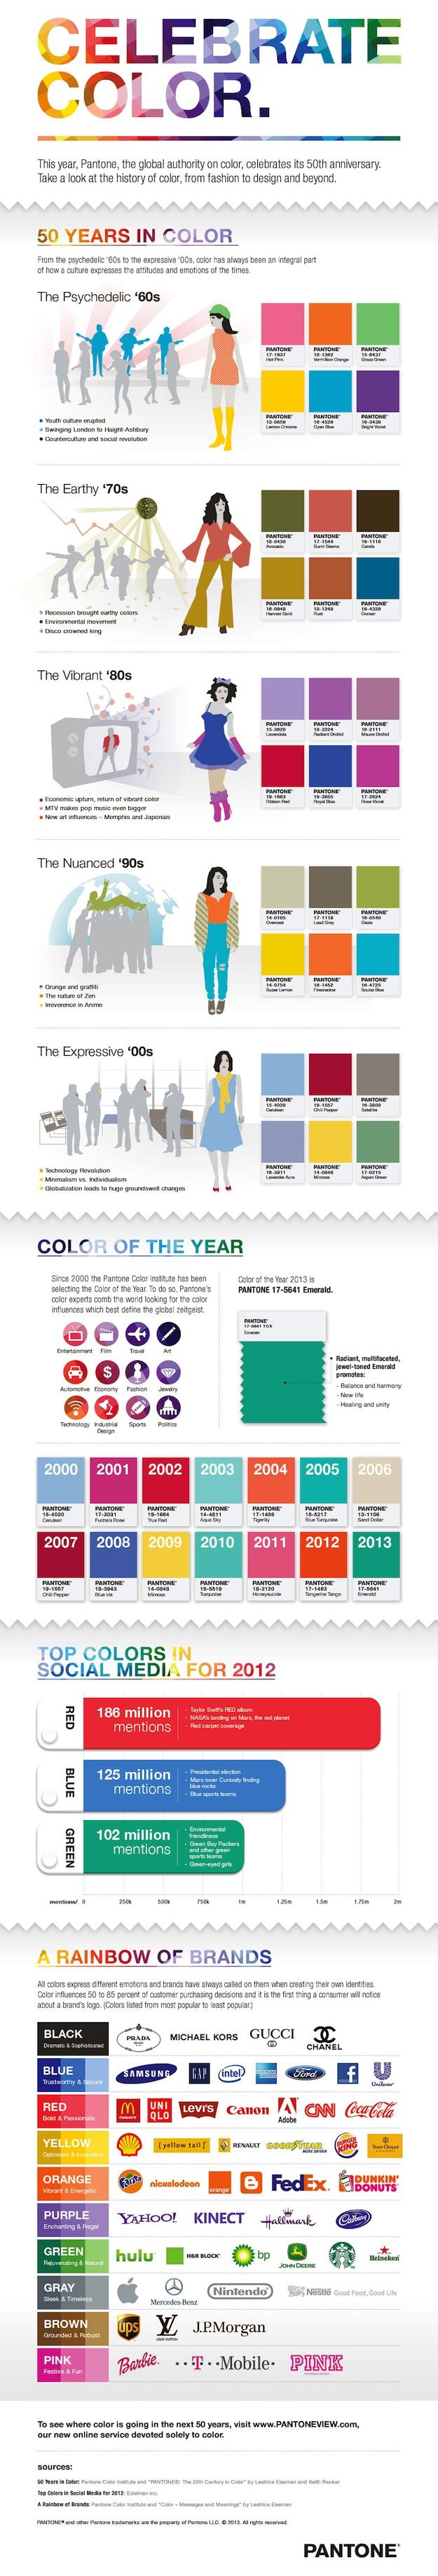 Pantone Traces 50 Years Of Color History [Infographic]